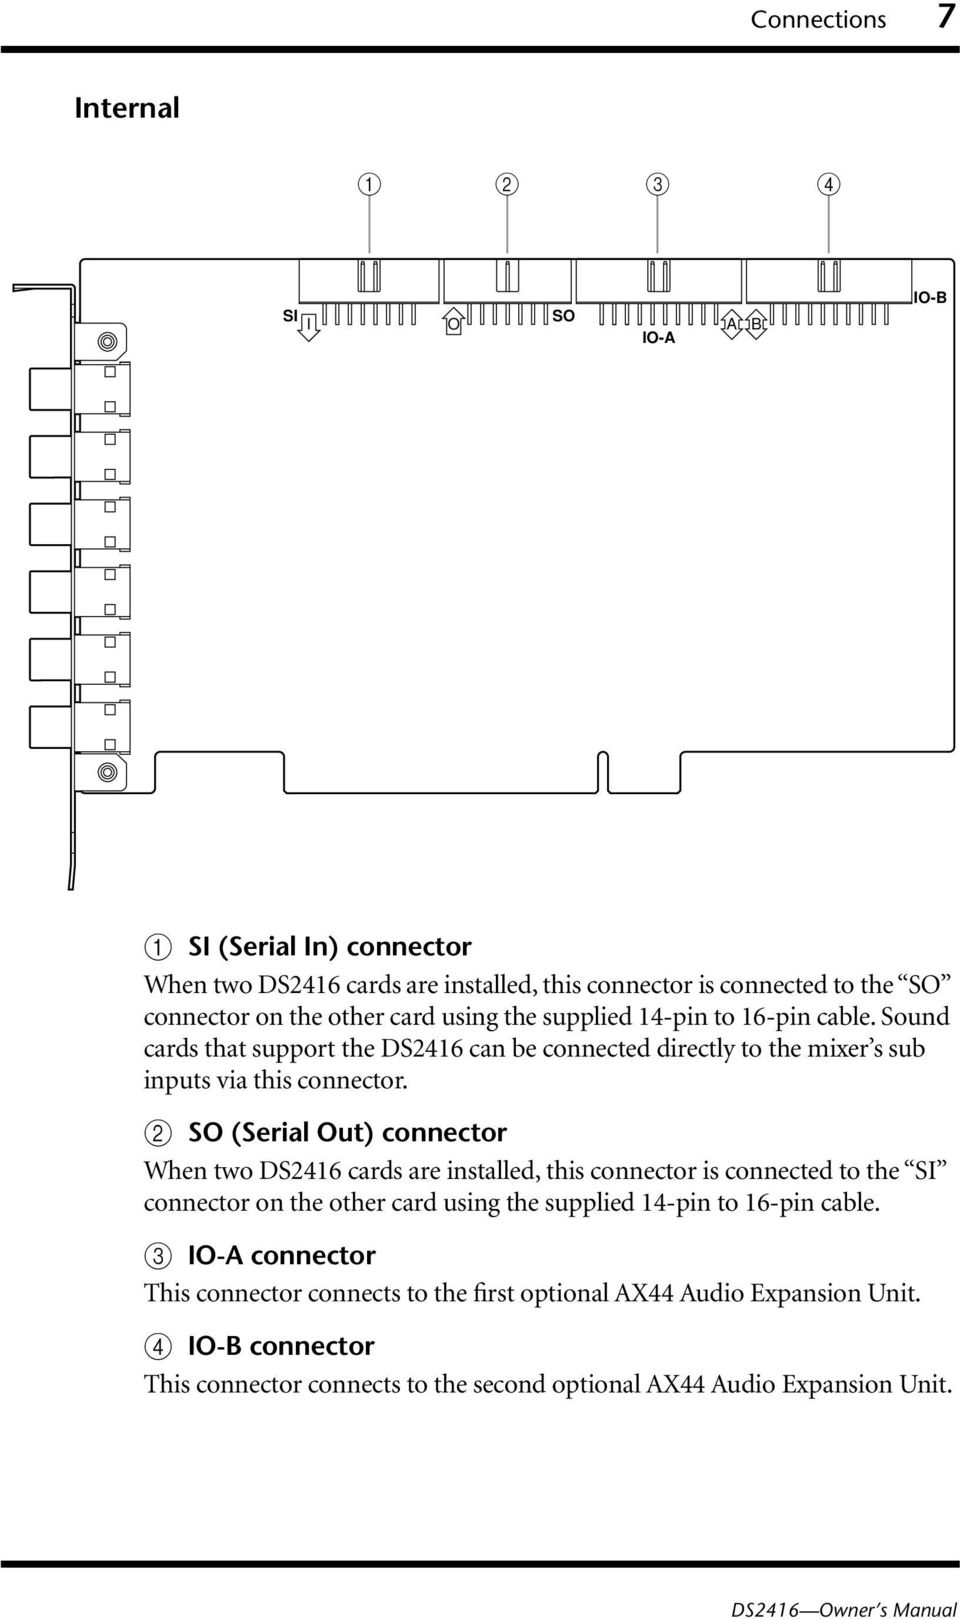 Ds2416 Digital Mixing Card Owner S Manual Mode D Emploi 01v96 Block Diagram B So Serial Out Connector When Two Cards Are Installed This